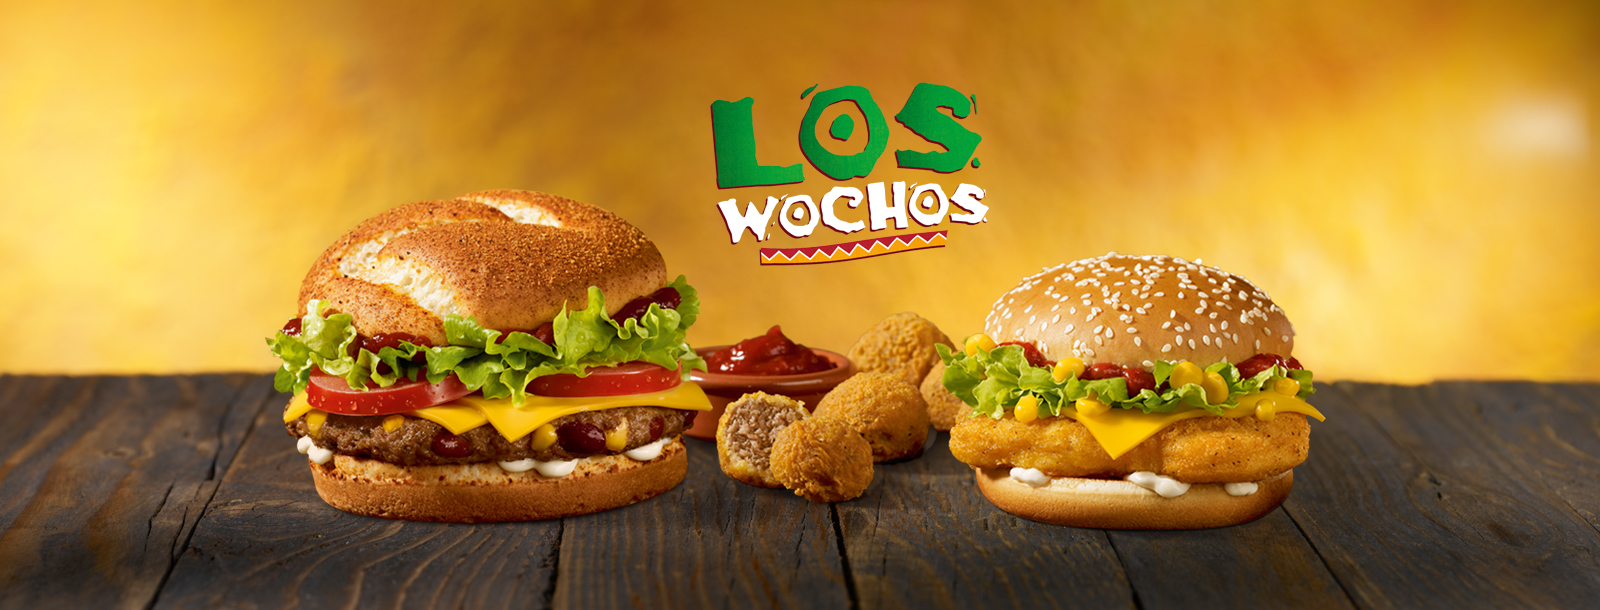 Campaign Data List Mcdonald 39 S Los Wochos